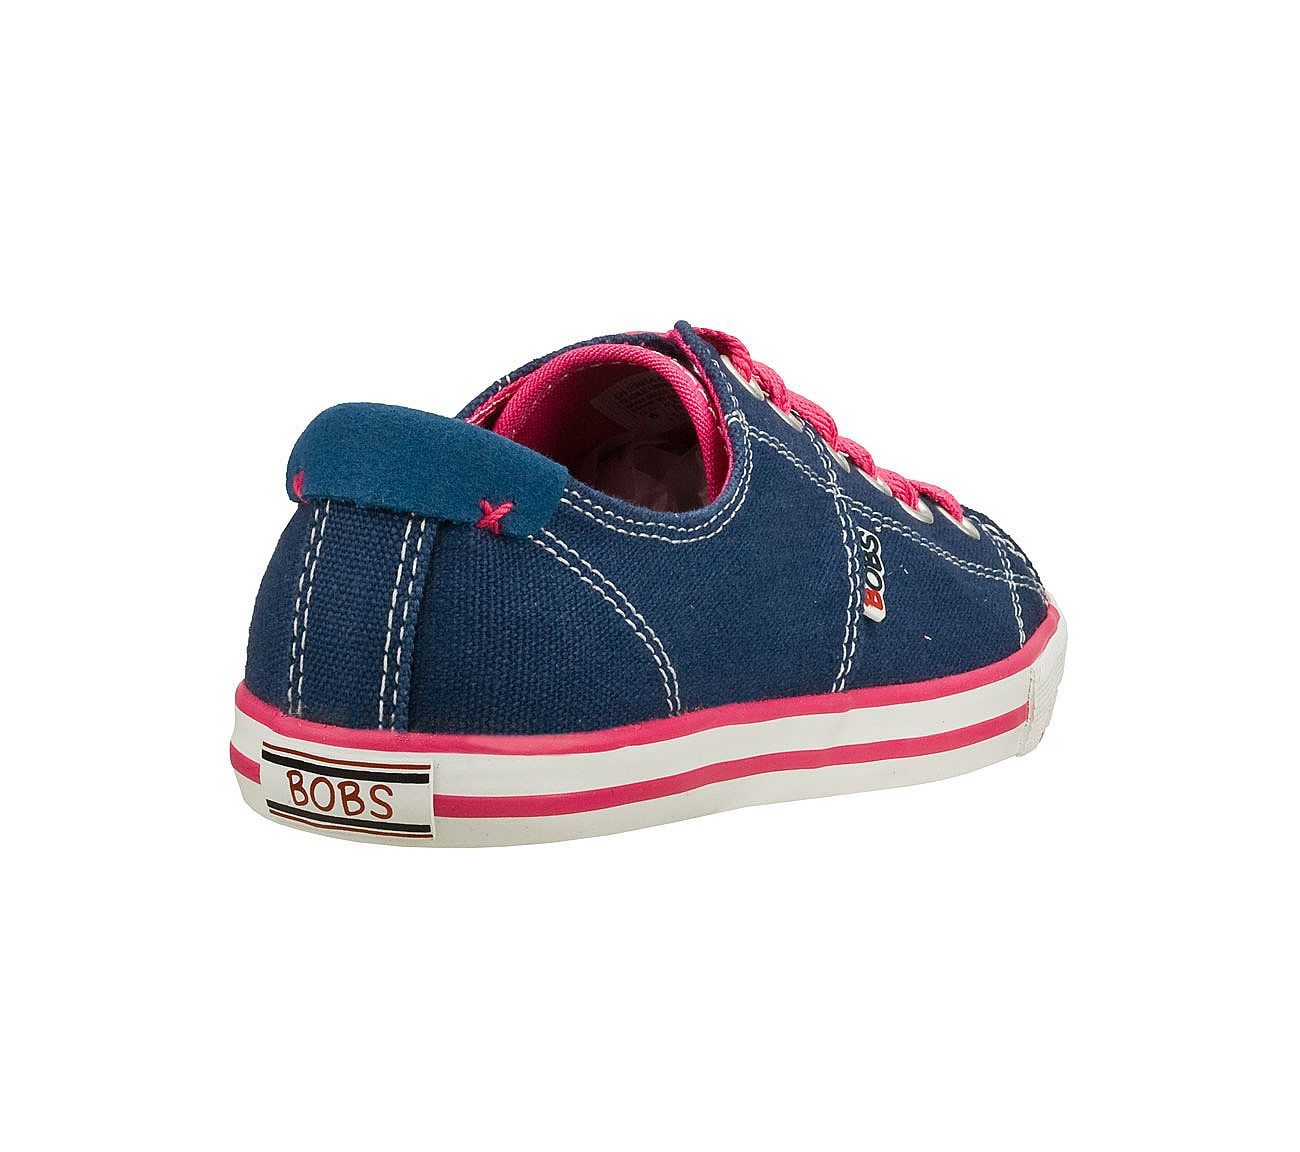 292d9d873ad Skechers Bobs Lo-Topia. Click tap to zoom · Alternate View 1 · Alternate  View 2